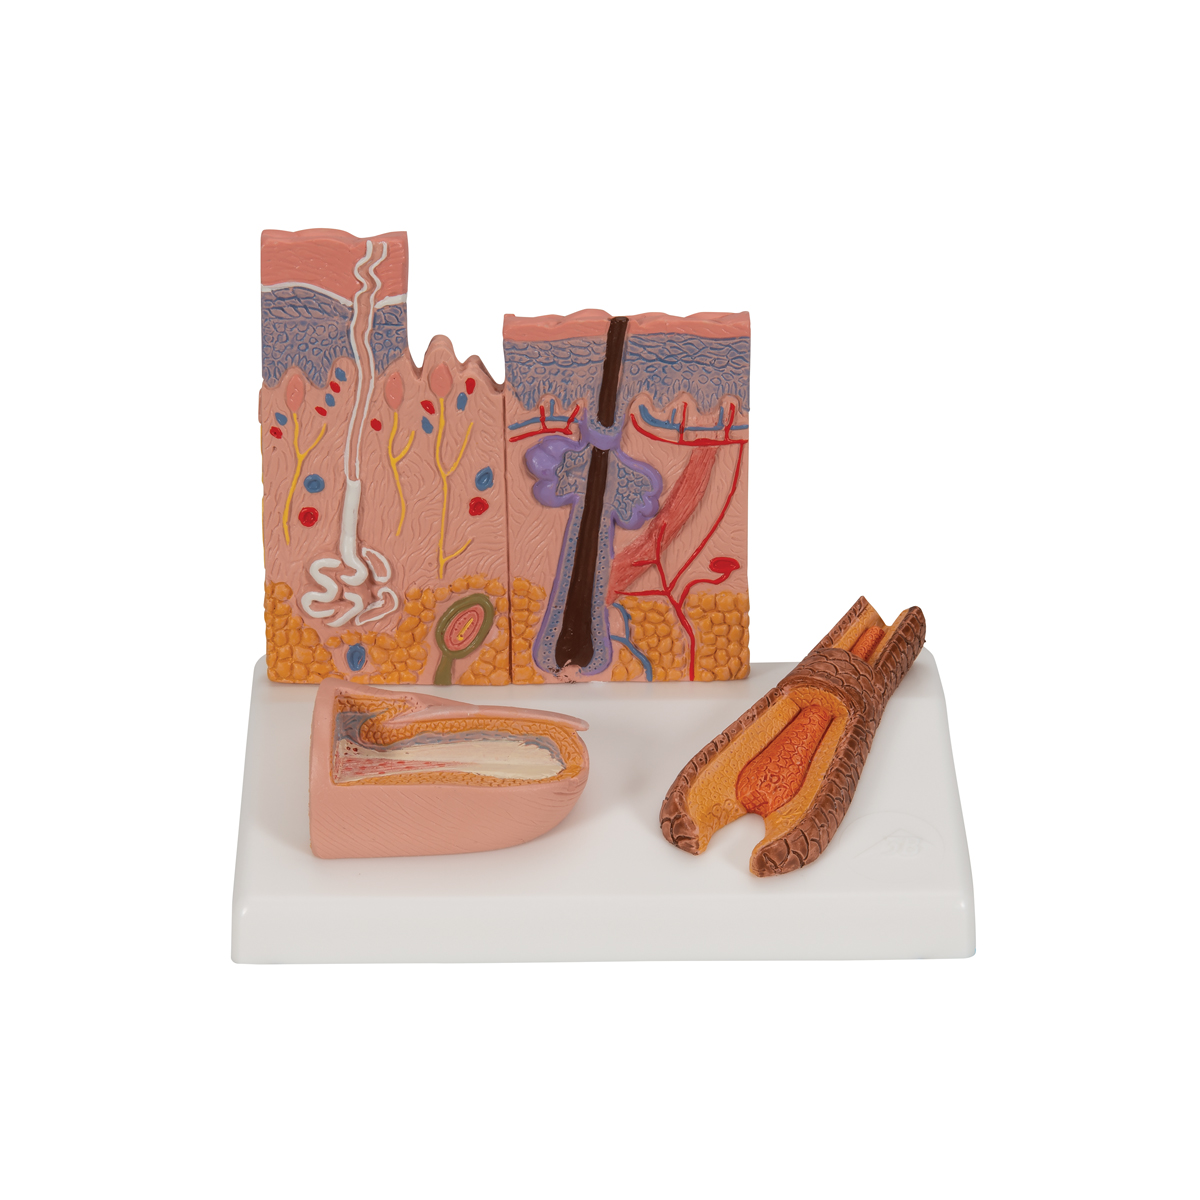 Anatomical Teaching Model Plastic Anatomy Models Skin Models